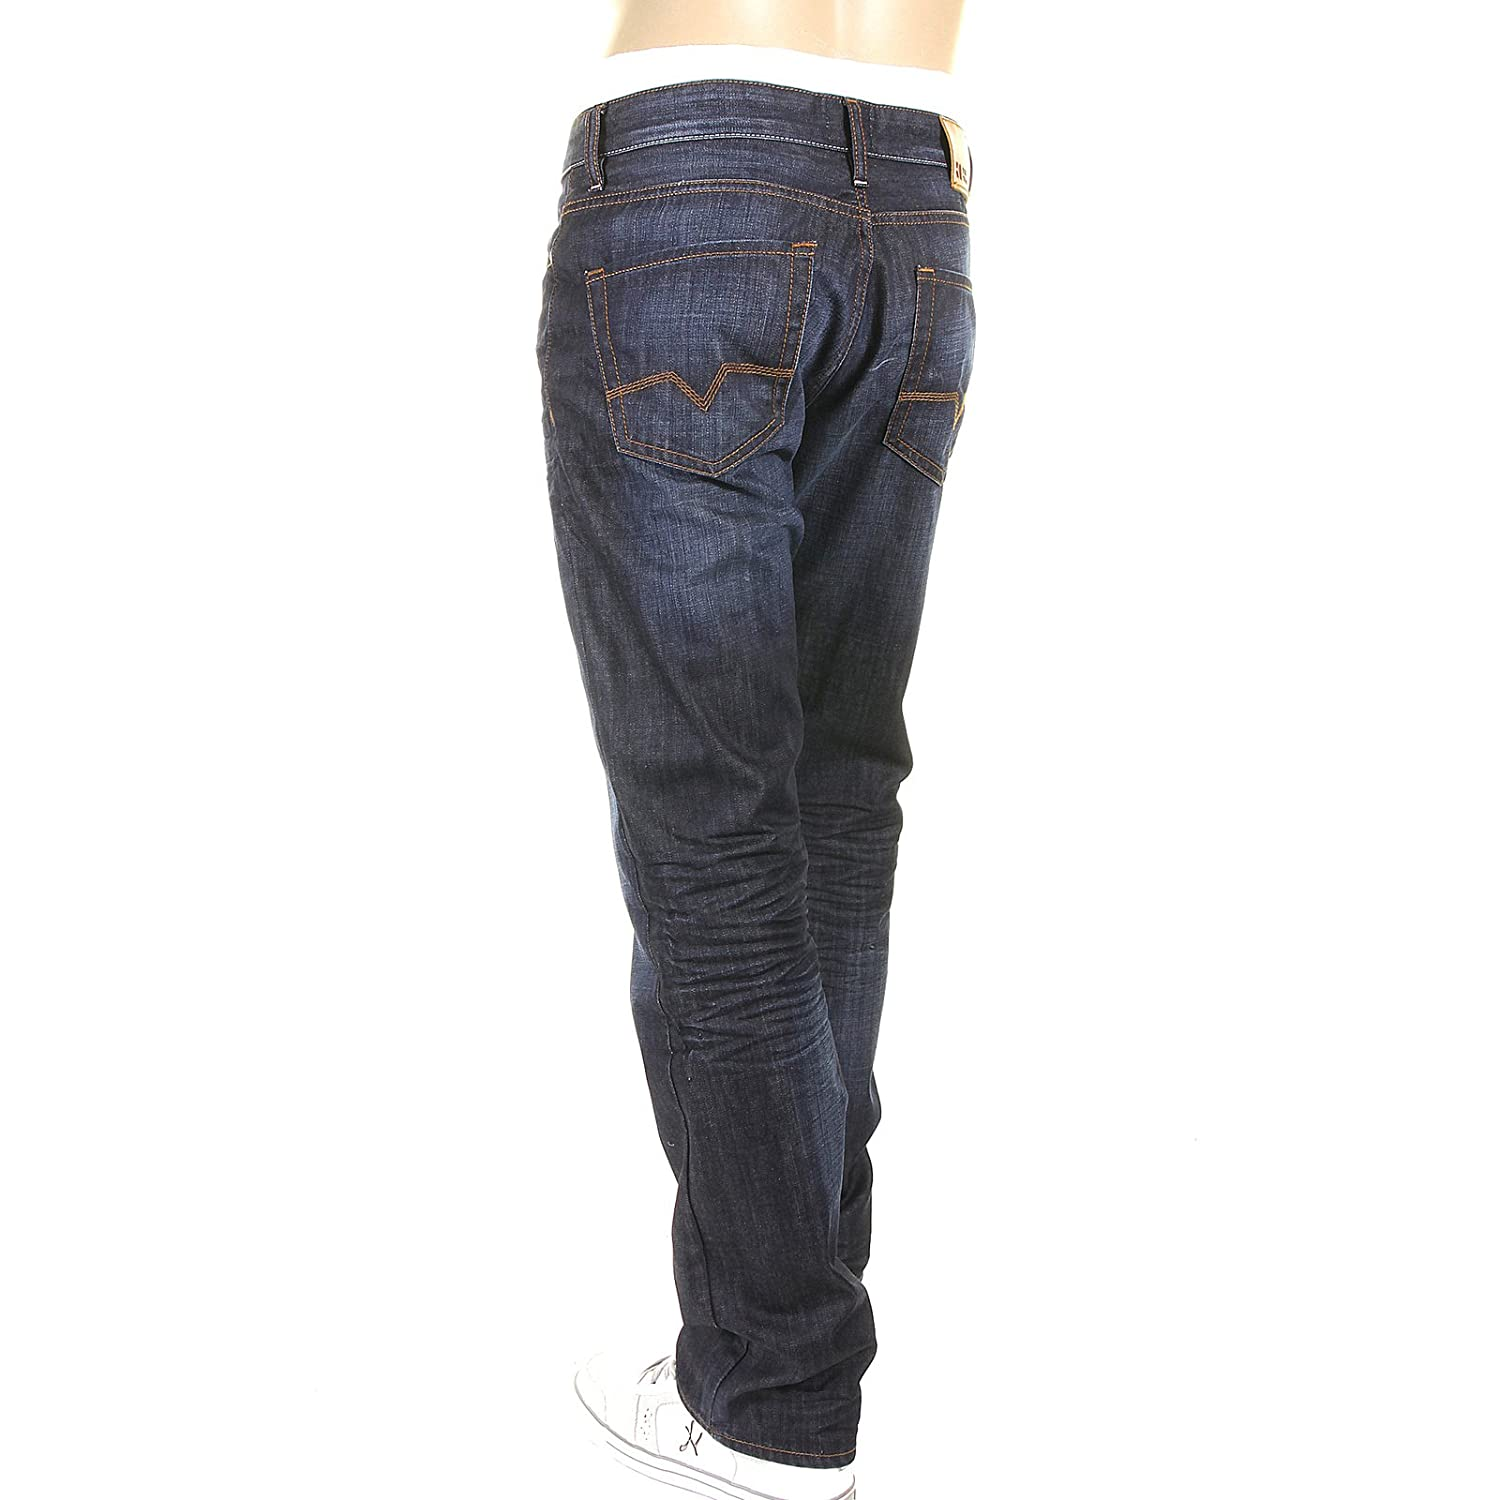 7c8e139e1b Boss Orange jeans Orange25 moonlight washed indigo 50177587 402 Hugo Boss  denim jean BOSS2614: Amazon.co.uk: Clothing